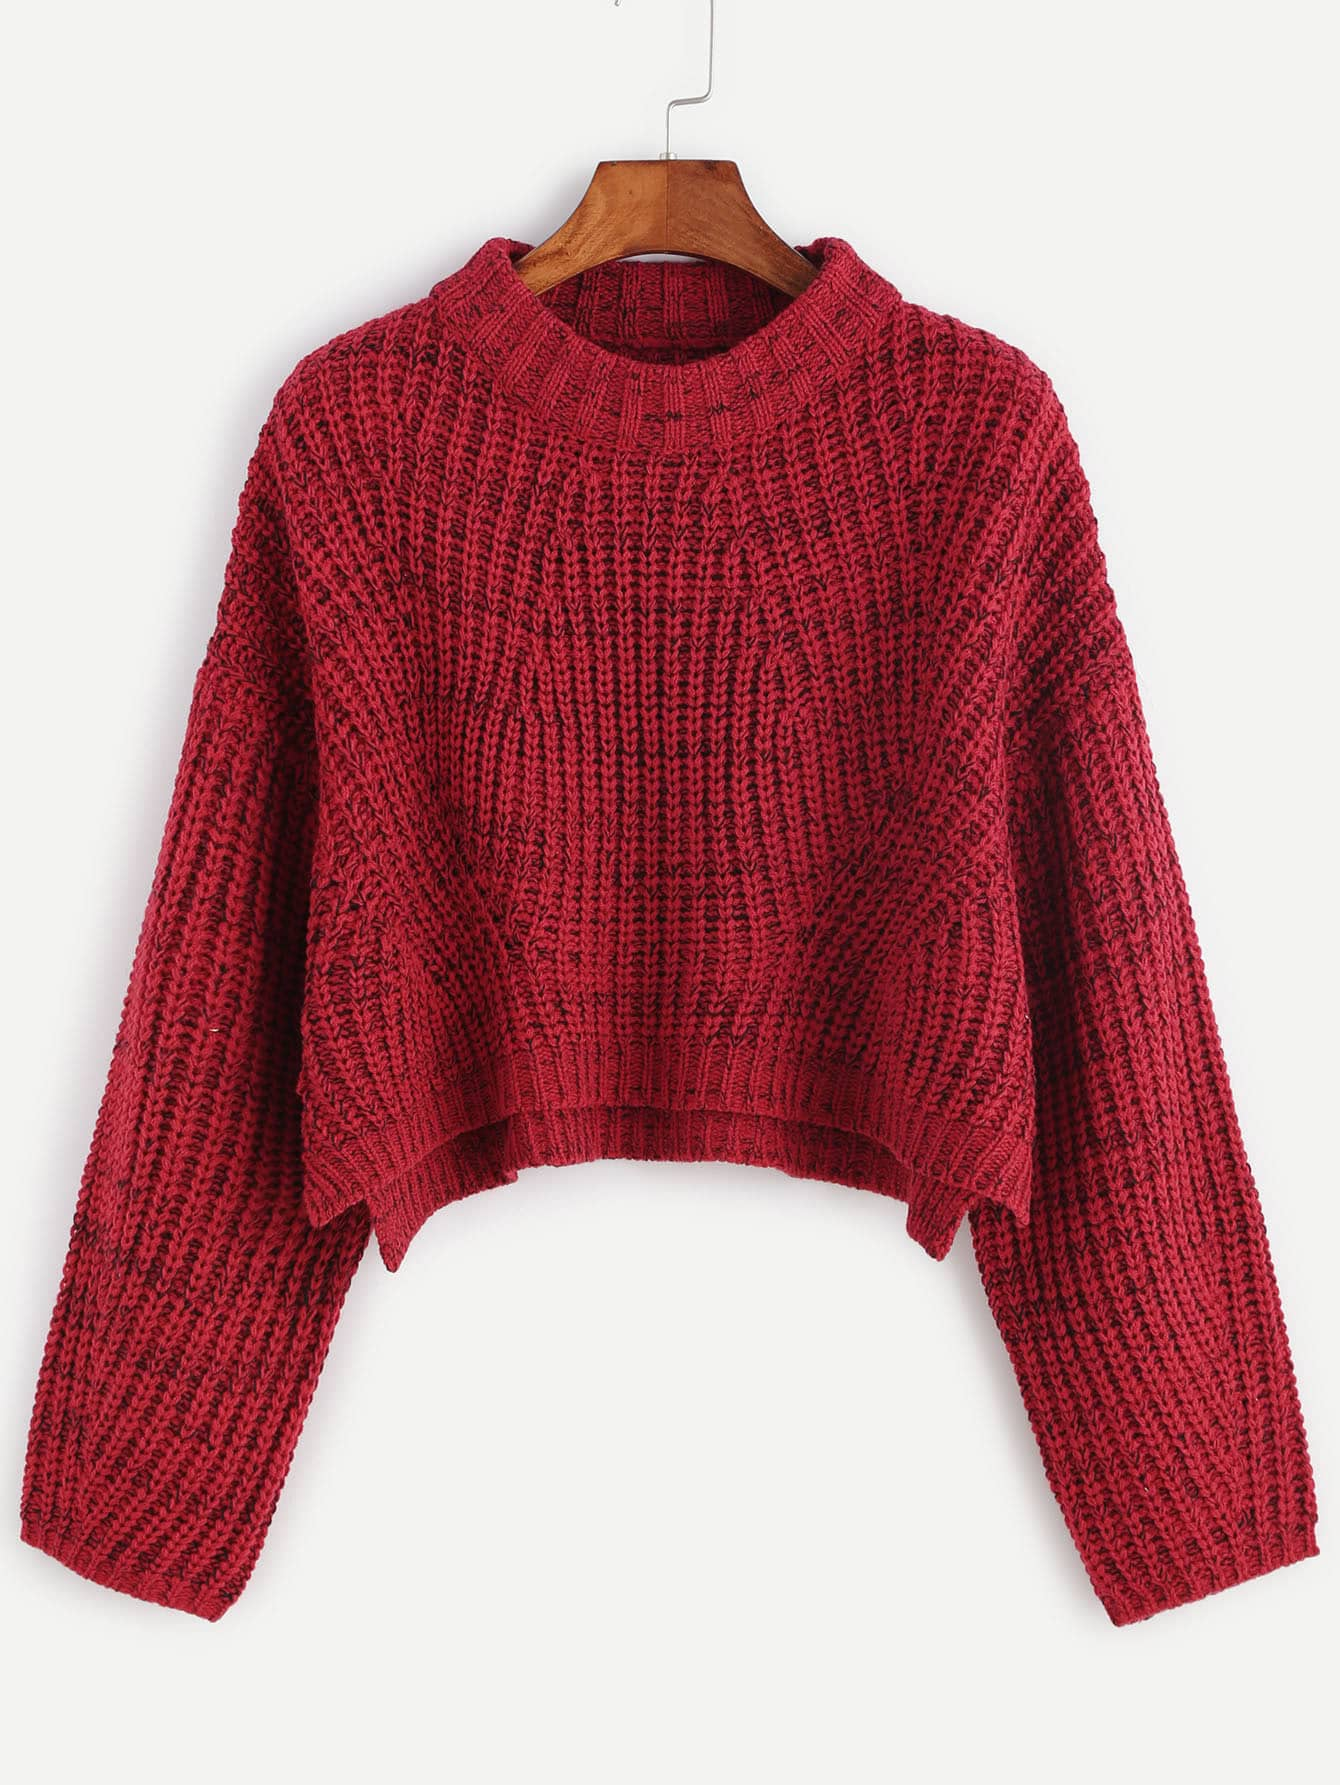 Red Marled Knit Drop Shoulder Slit Crop Sweater -SheIn(Sheinside)